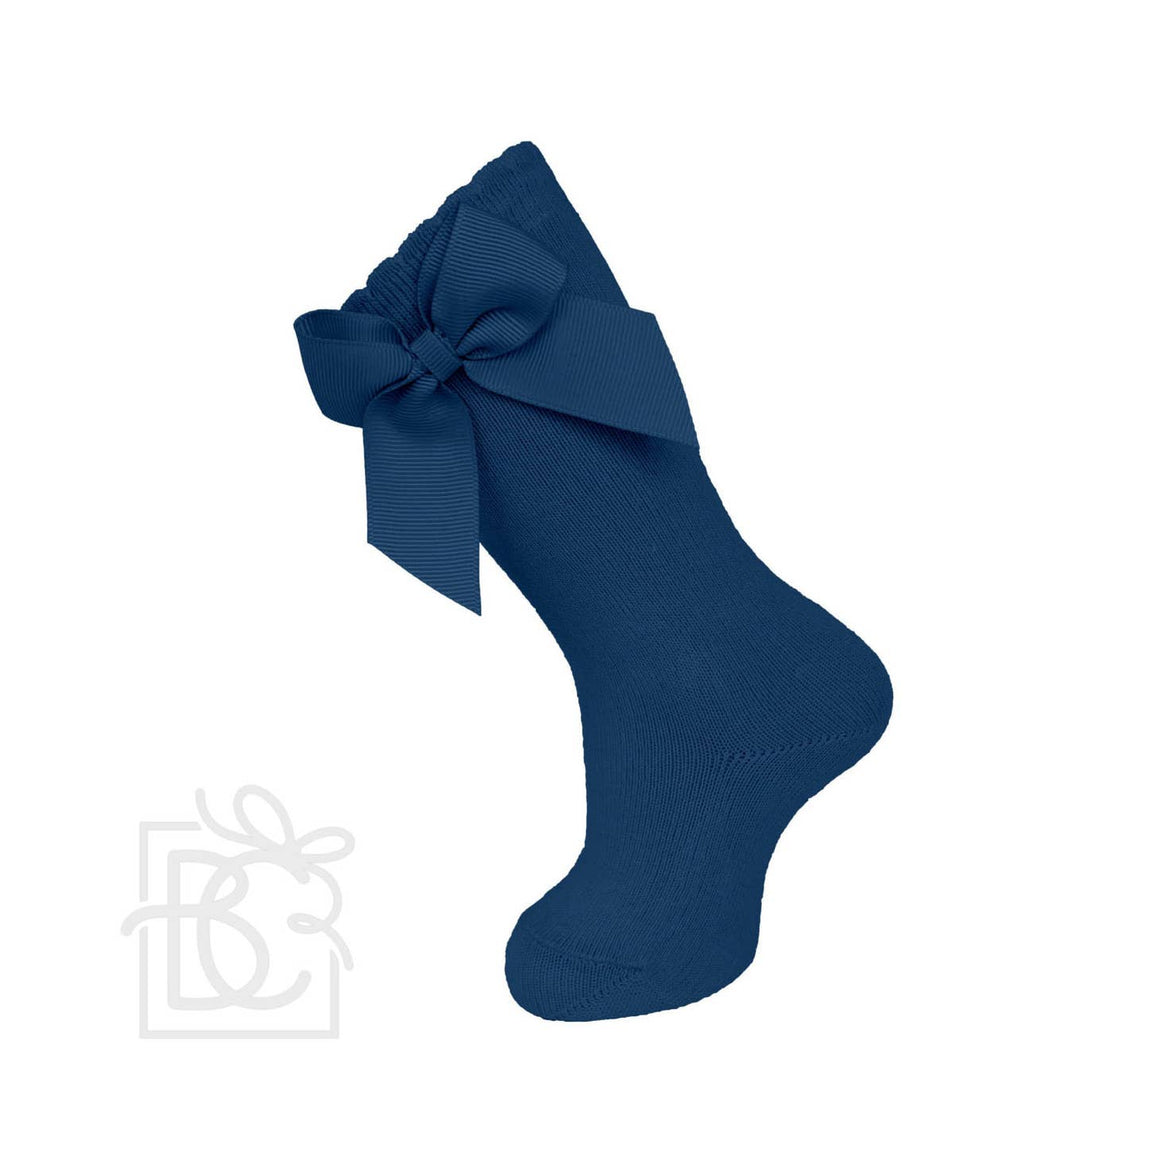 Carlomagno | Knee Socks With Gross Grain Side Bow | Navy